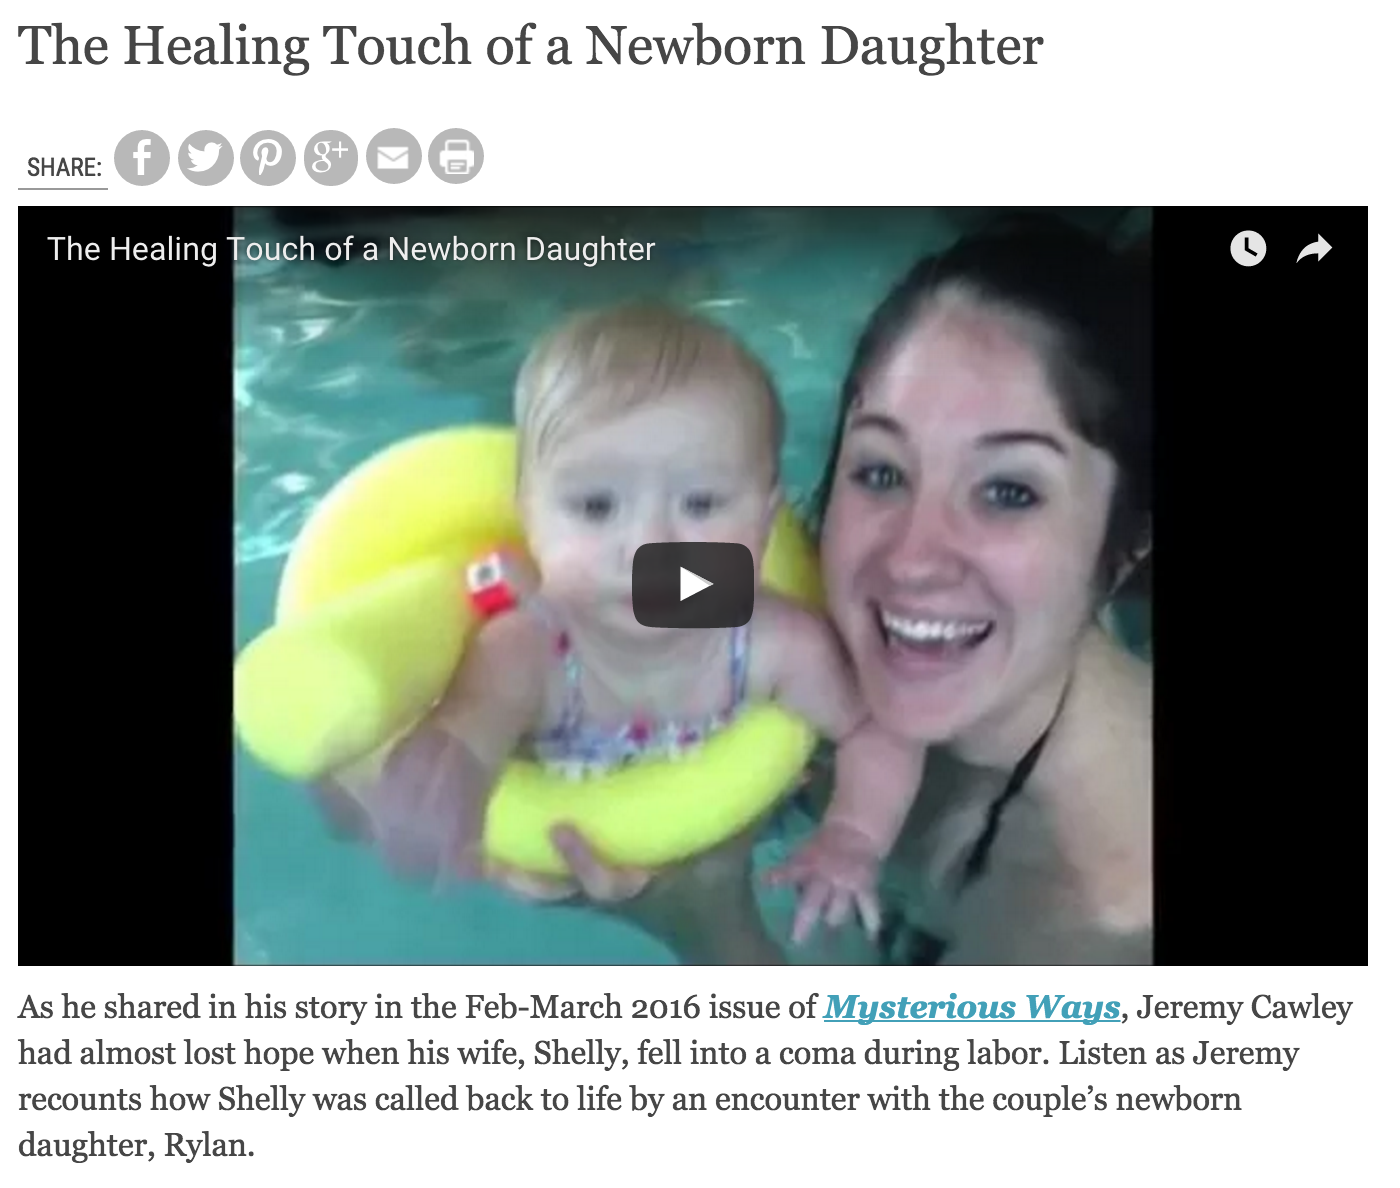 The Healing Touch of a Newborn Daughter